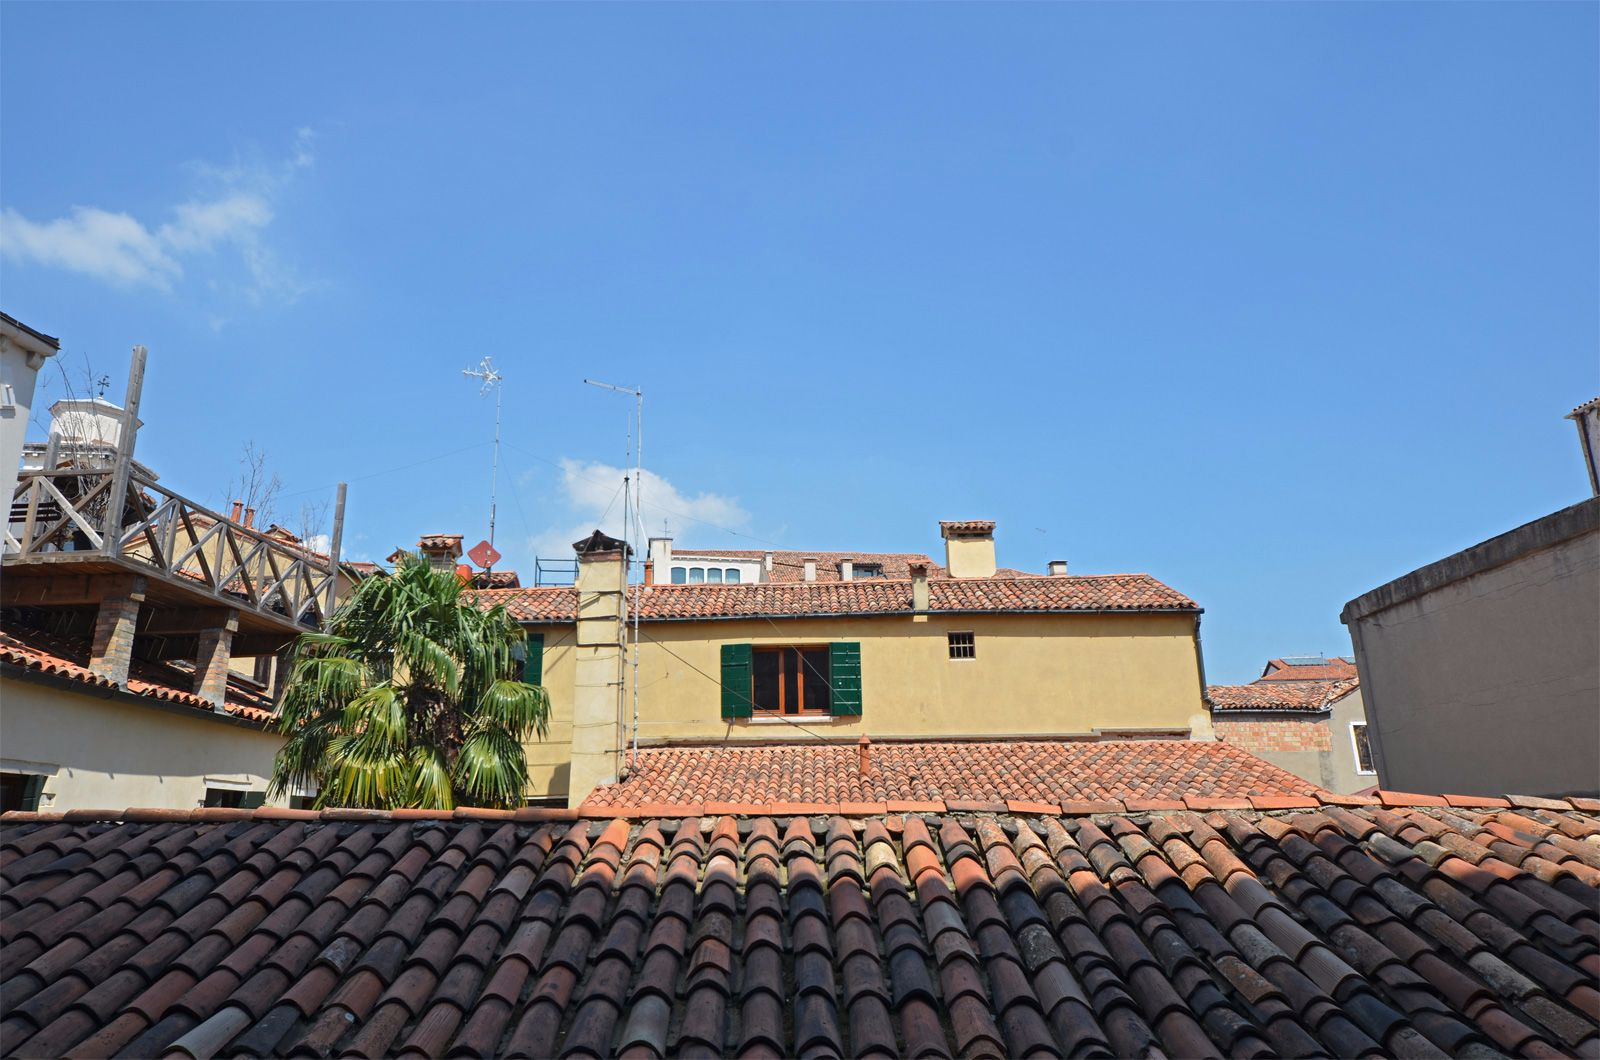 view from the large window on the rooftops